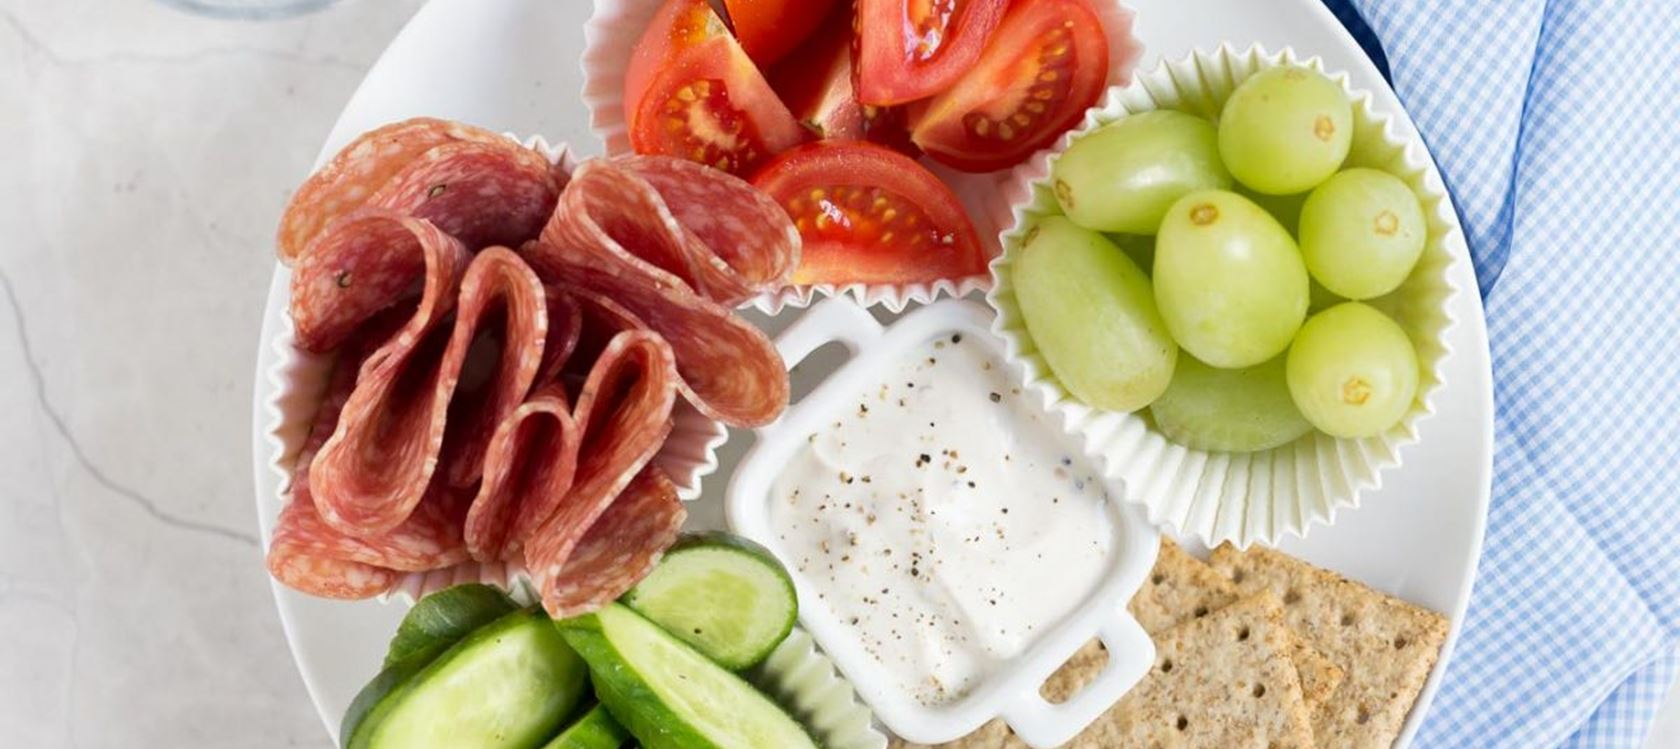 Adult Lunchable with Veggies, Salami & Cream Cheese